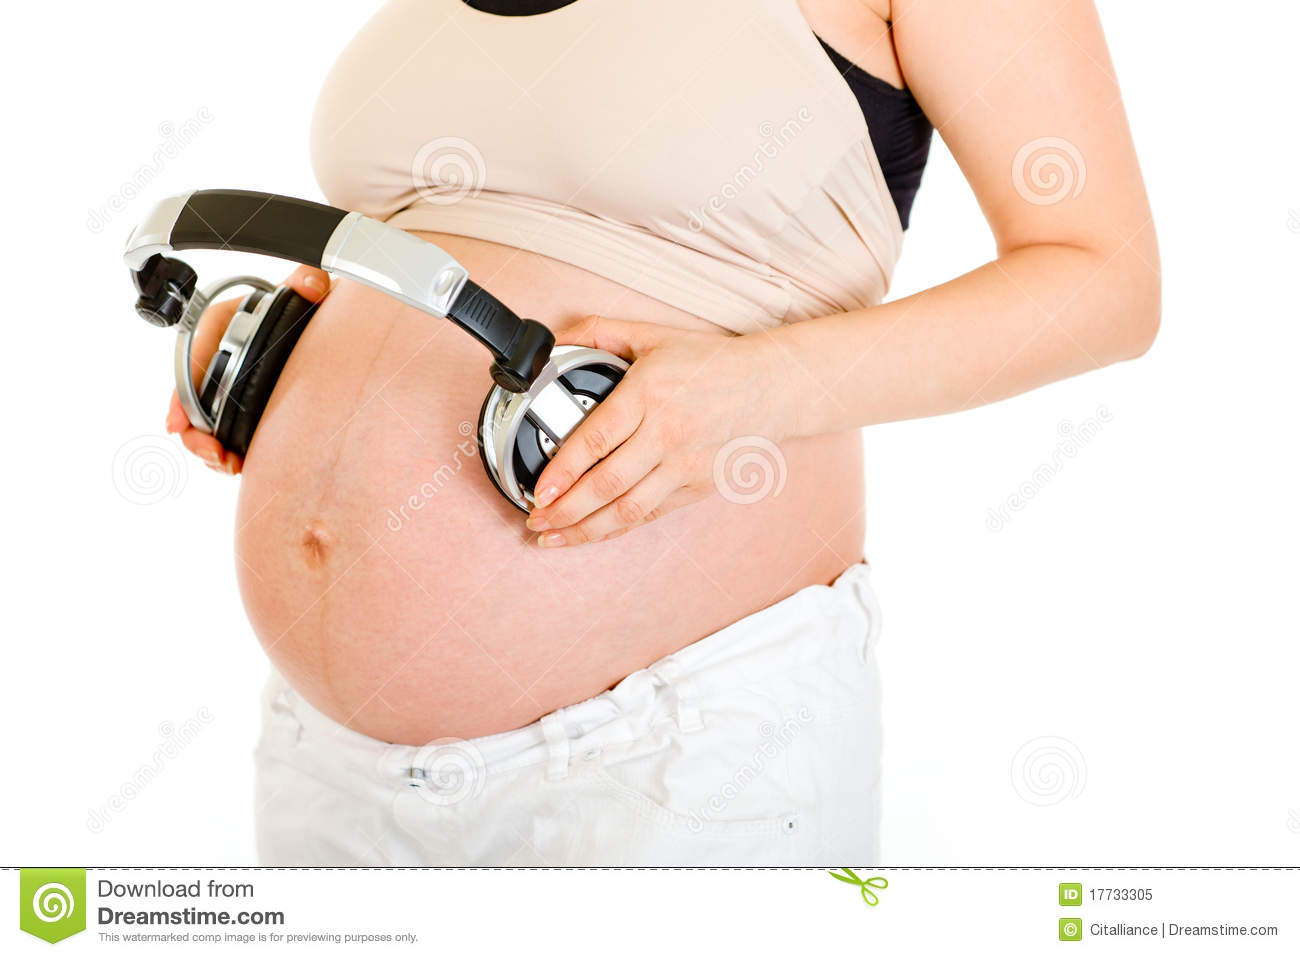 pregnant-headphones-belly-close-up-17733305.jpg